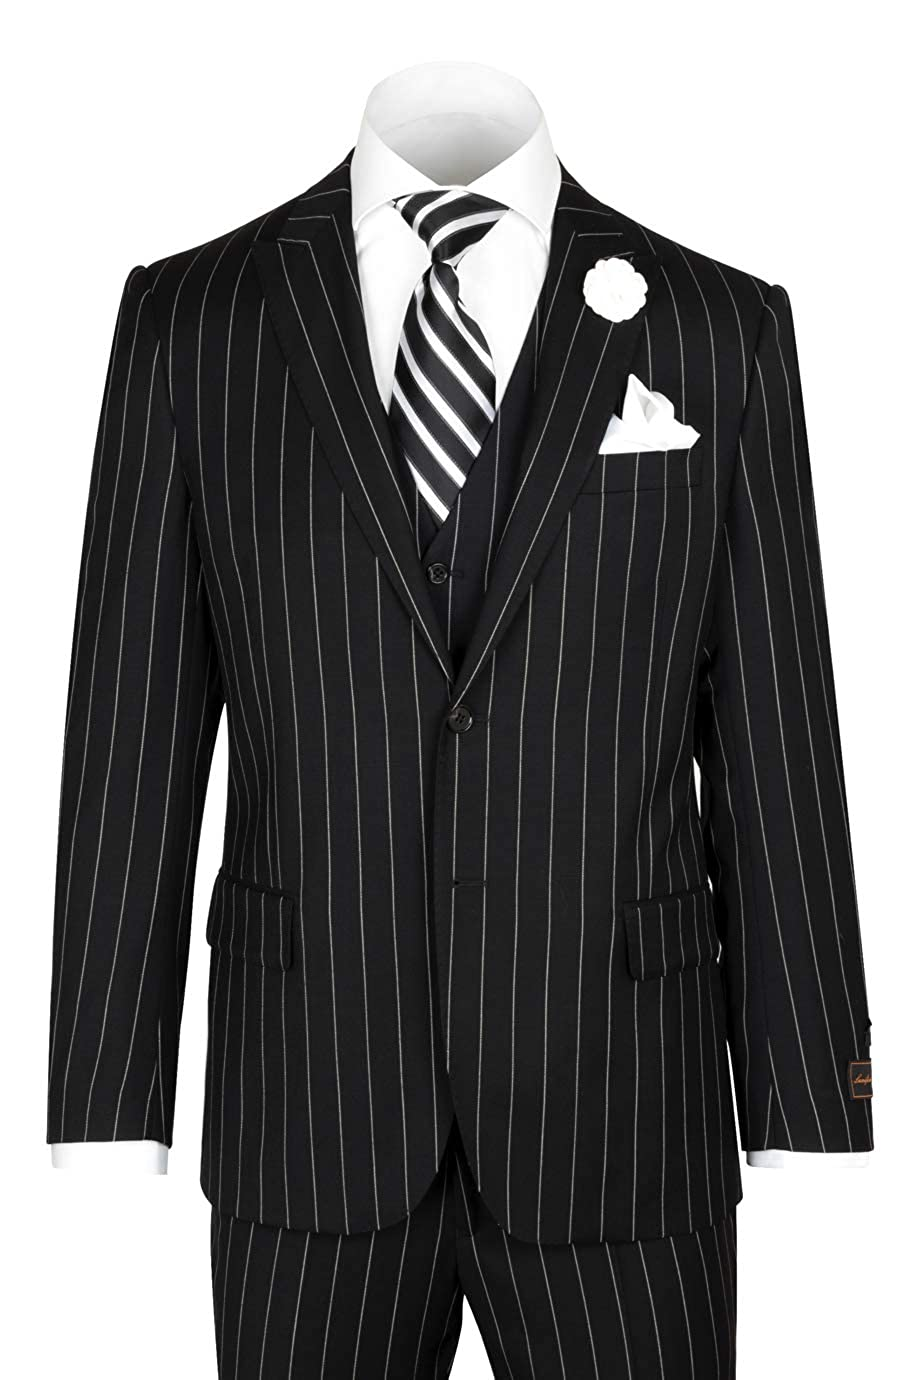 Retro Clothing for Men | Vintage Men's Fashion Tiglio Luxe Tufo Modern Fit Black Pin-Stripe Pure Wool Suit & Vest TIG1052 $399.00 AT vintagedancer.com